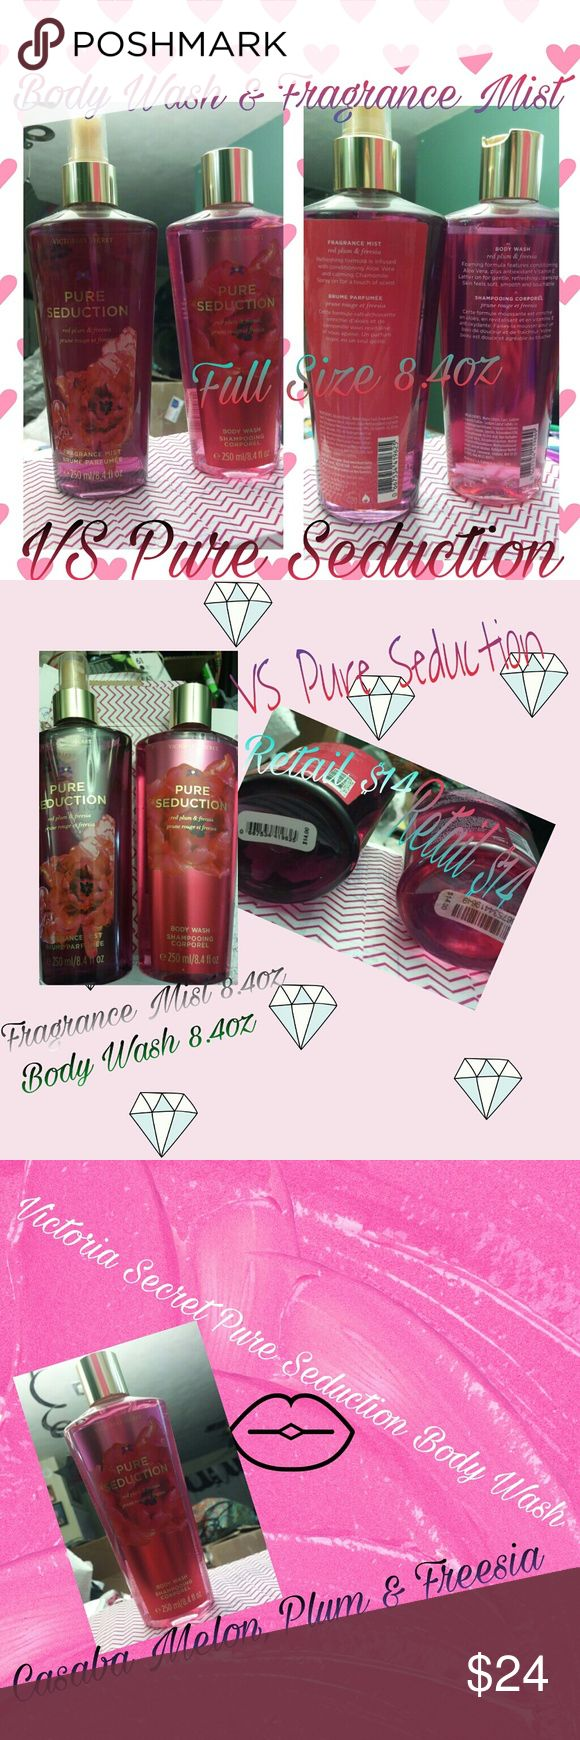 Victoria Secret Pure Seduction Body Wash & Mist FS Victoria Secret Pure Seduction 2pc bundle of Full Size (8.4oz) Body Wash & Fragrance Mist! Take notice that these are the old style bottles but the same amazing product! Notes: Casaba Melon, Red Plum & Freesia.. Wash~ Features conditioning Aloe Vera + antioxidant Vitamin E! Mist~ Refreshing formula infused with Aloe Vera & calming chamomile. Retail price for these are $14 each! I also have a 4.2oz Refreshing Body Mist that I may be willing…